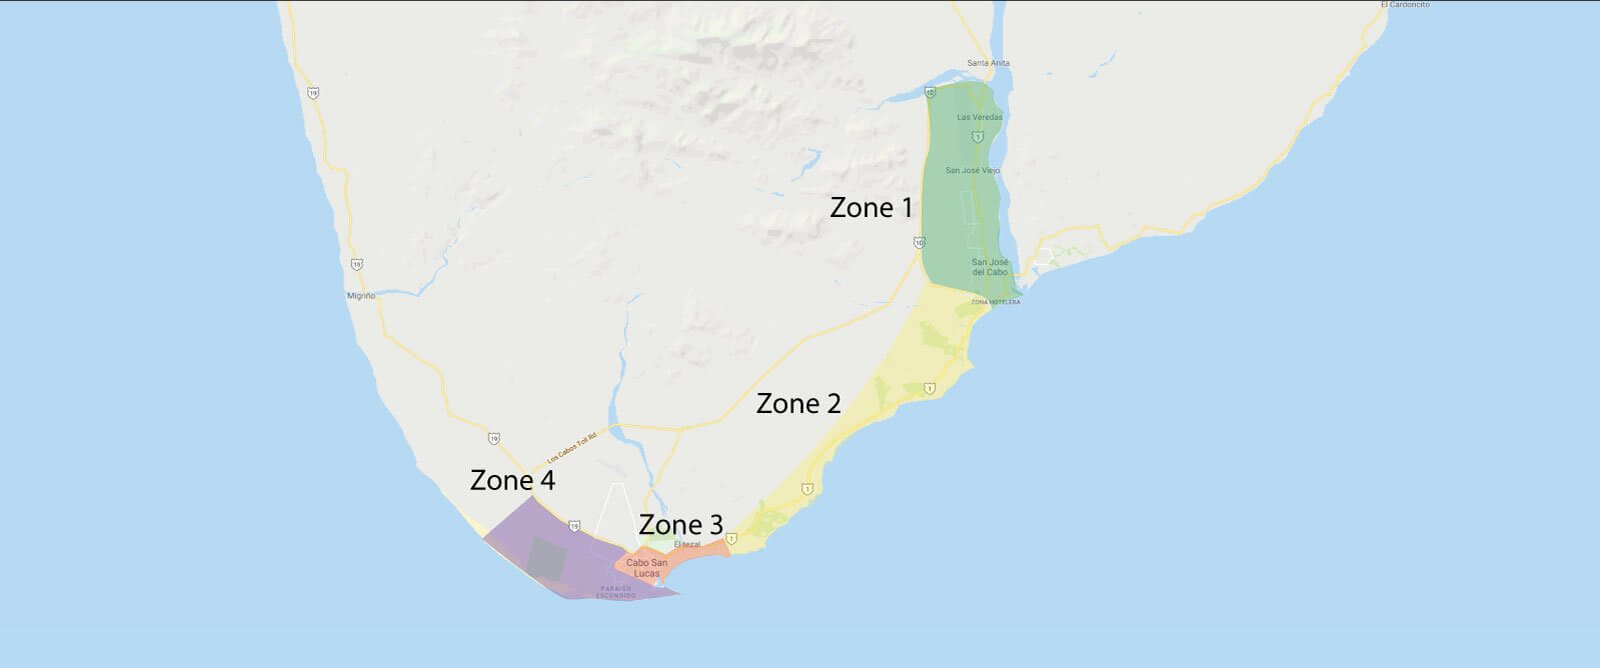 Los Cabos Hotels by Zones by Browns Private Services